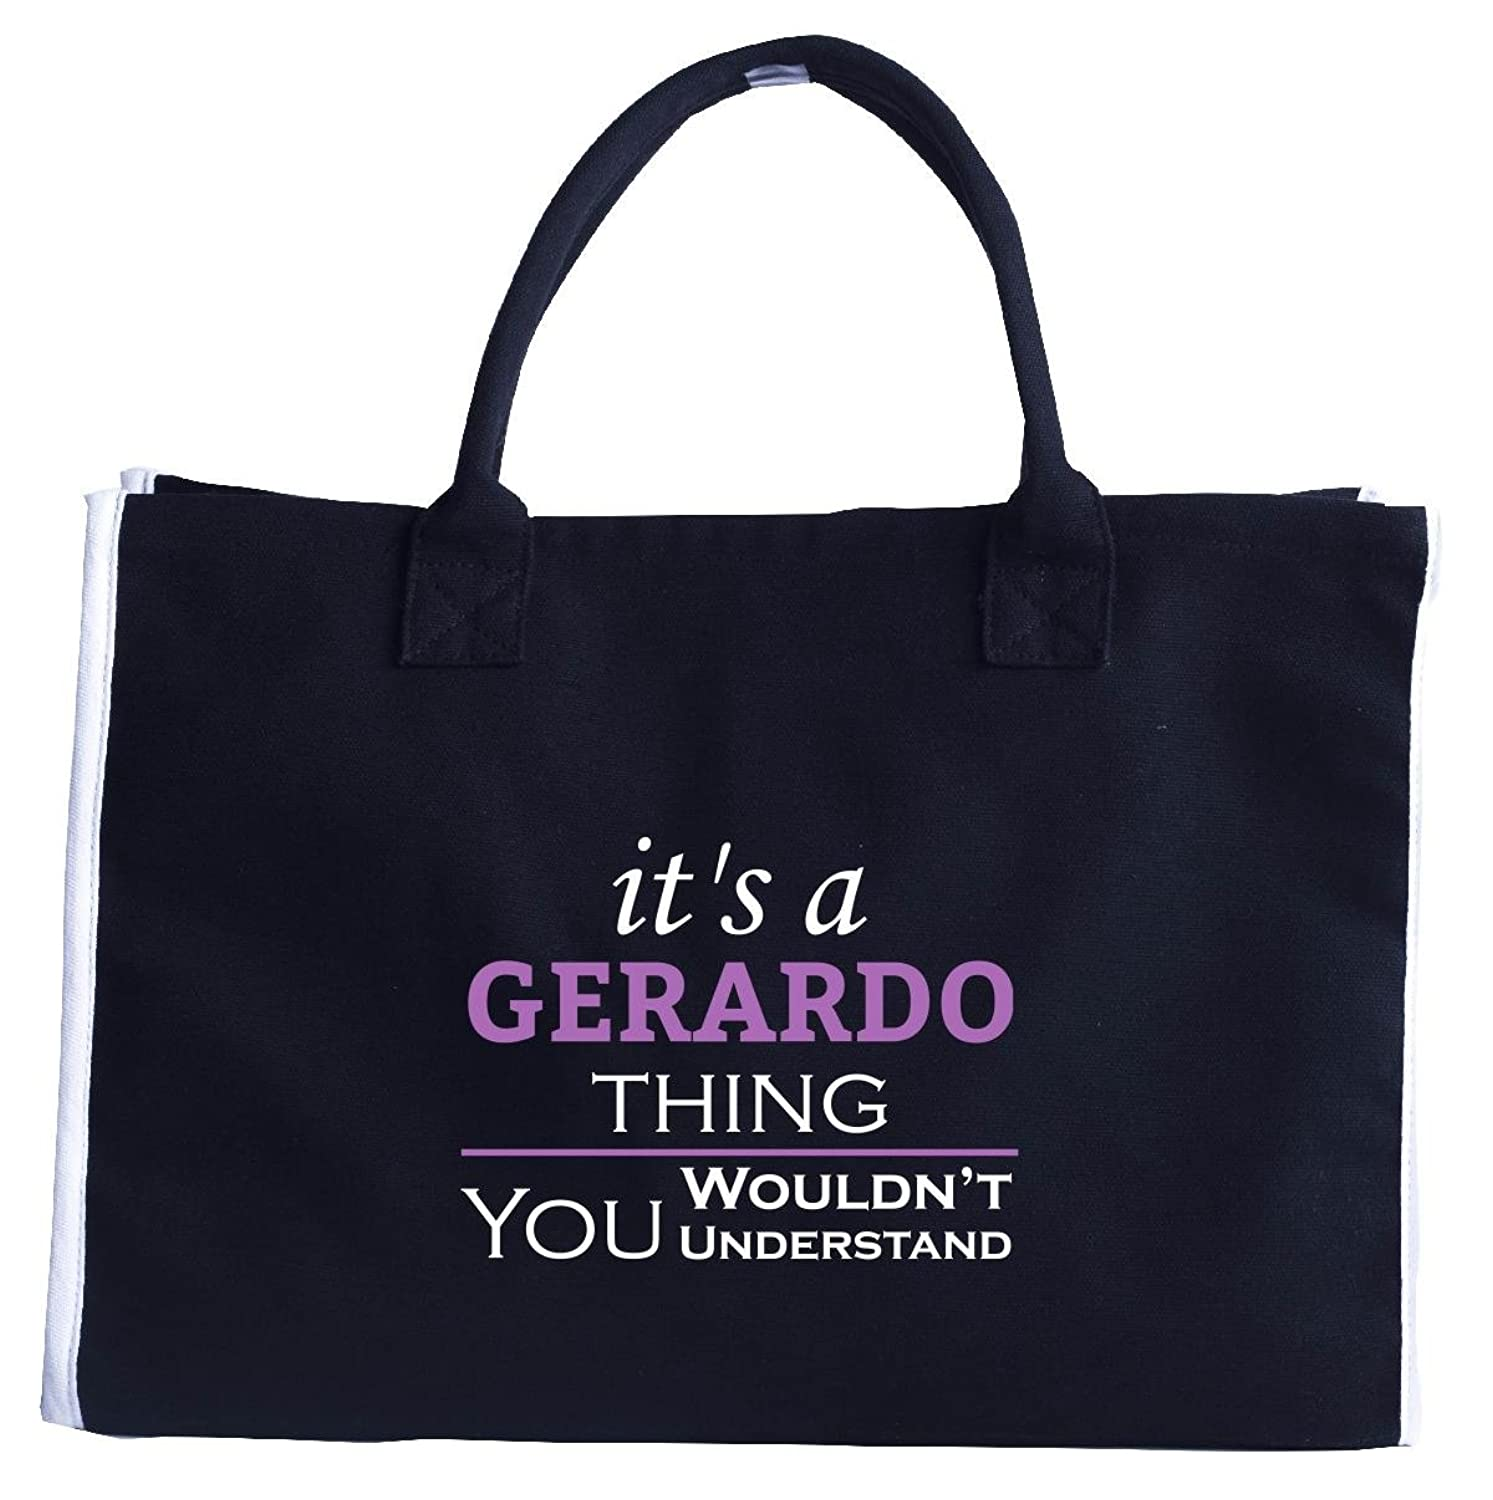 It S A Gerardo Thing You Wouldn T Understand - Tote Bag